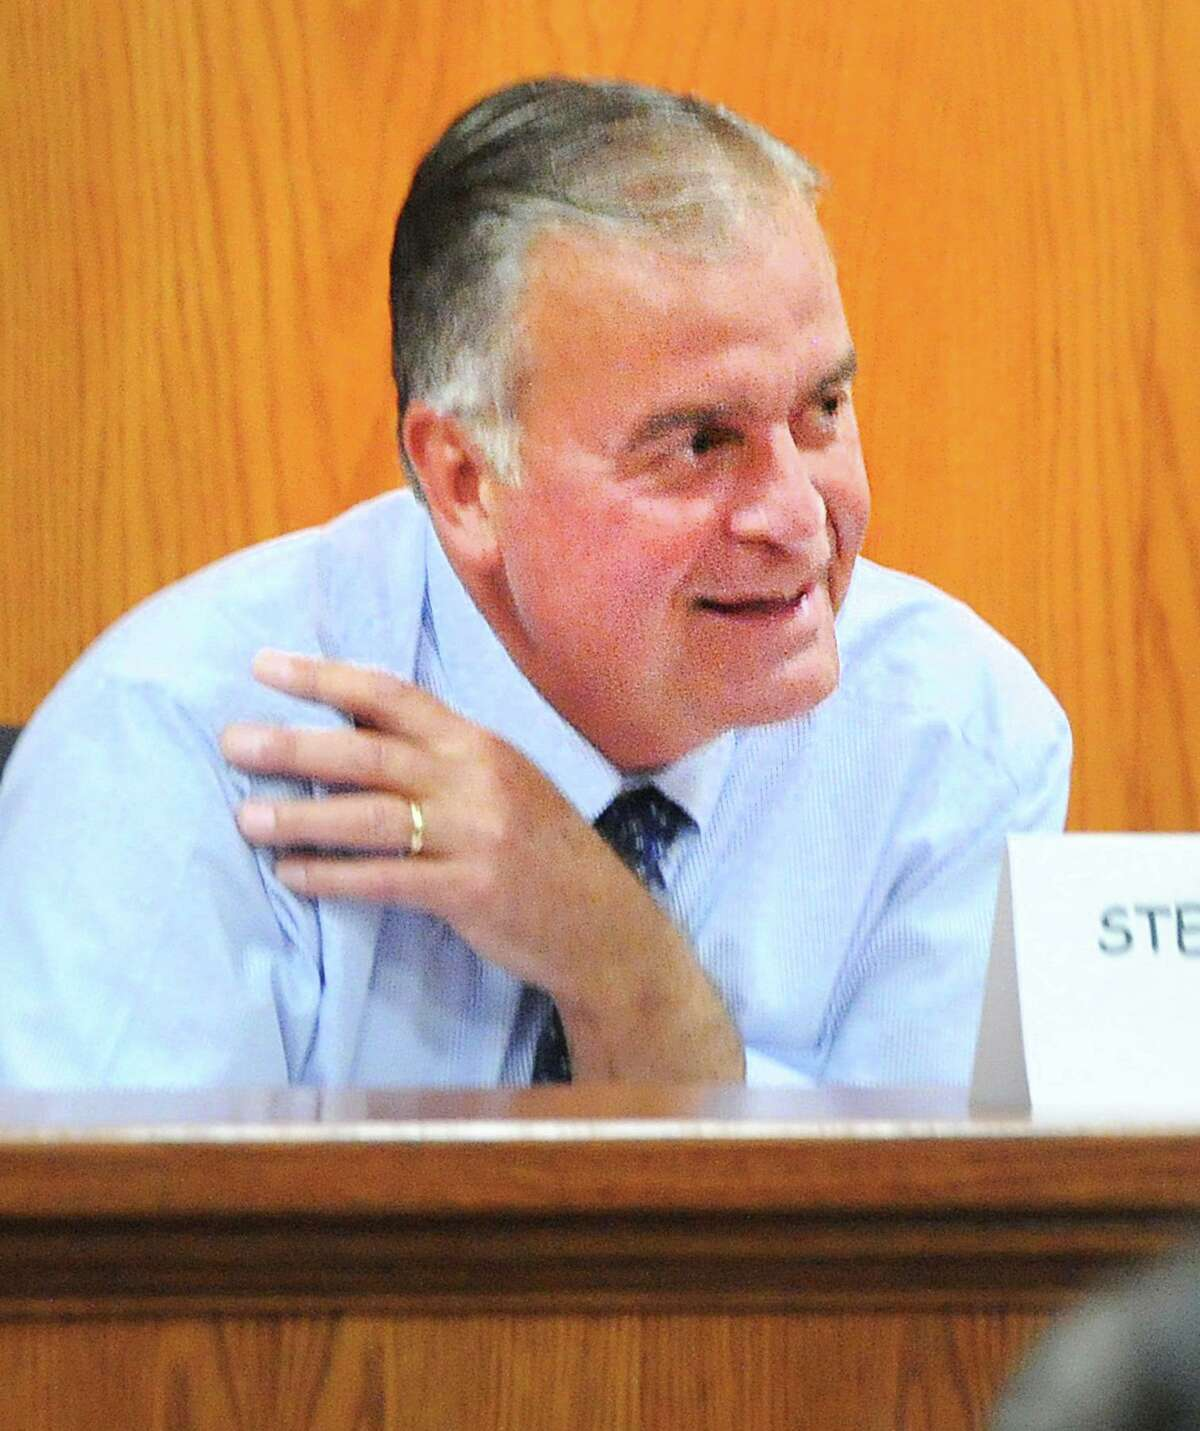 State Rep. Stephen Meskers, D-Greenwich